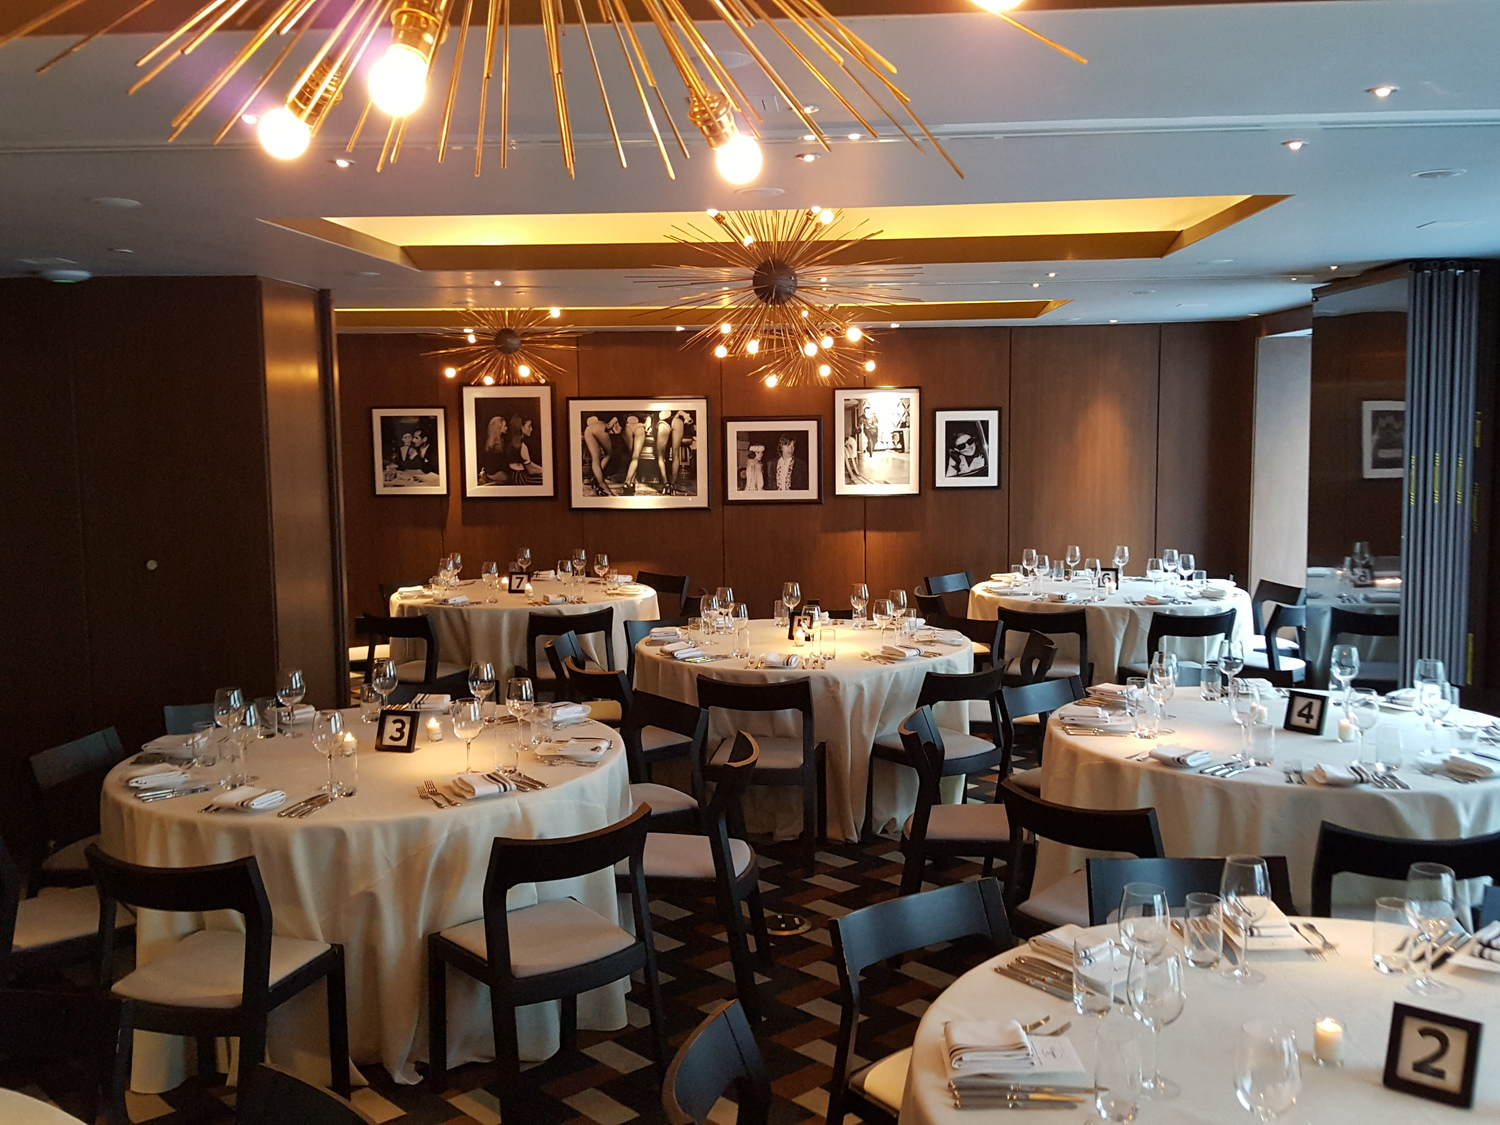 private dining room setup